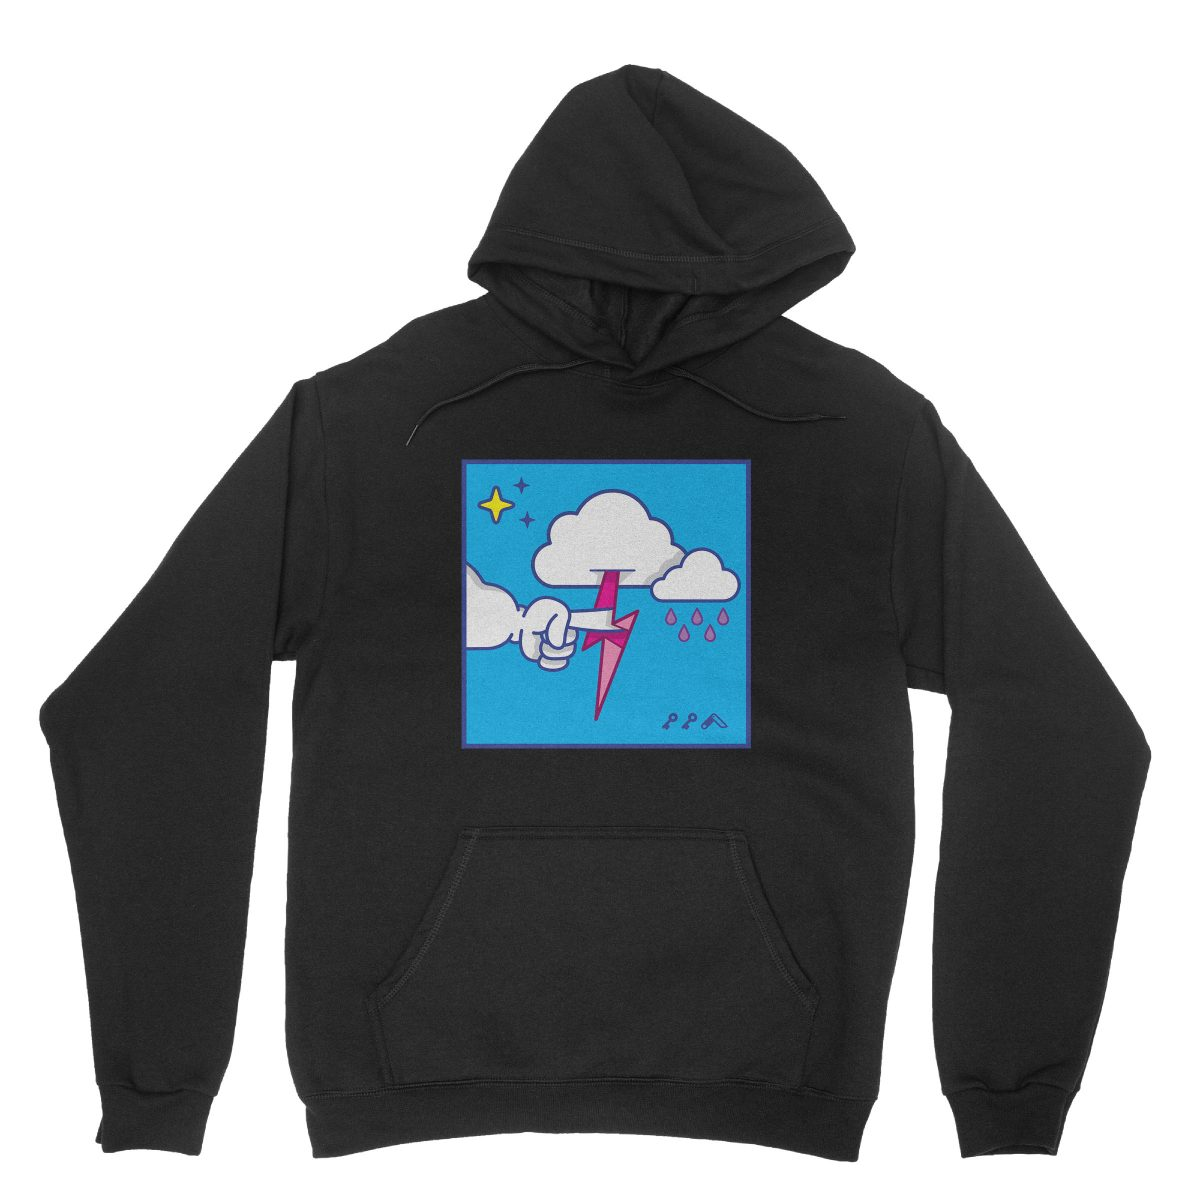 """""""MUTUAL CLOUDSENT"""" funny adult cartoon animation style hoodies in black at kikicutt.com"""